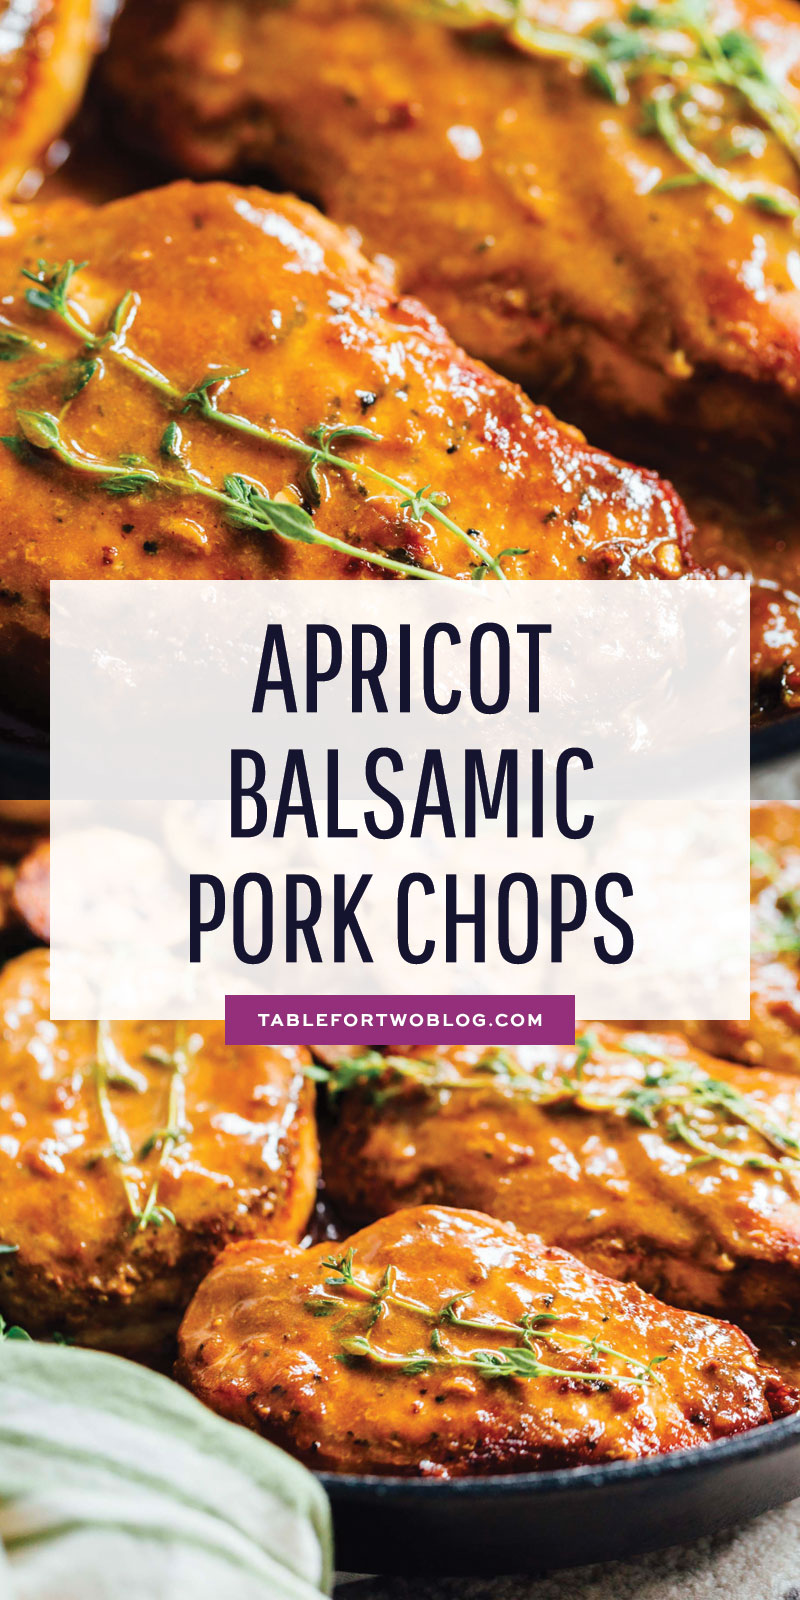 Apricot balsamic pork chops are going to be in your weeknight dinner rotation after your first bite of this sweet and tangy dish! #apricotbalsamic #apricot #porkchops #quickdinner #easydinner #skilletdinner